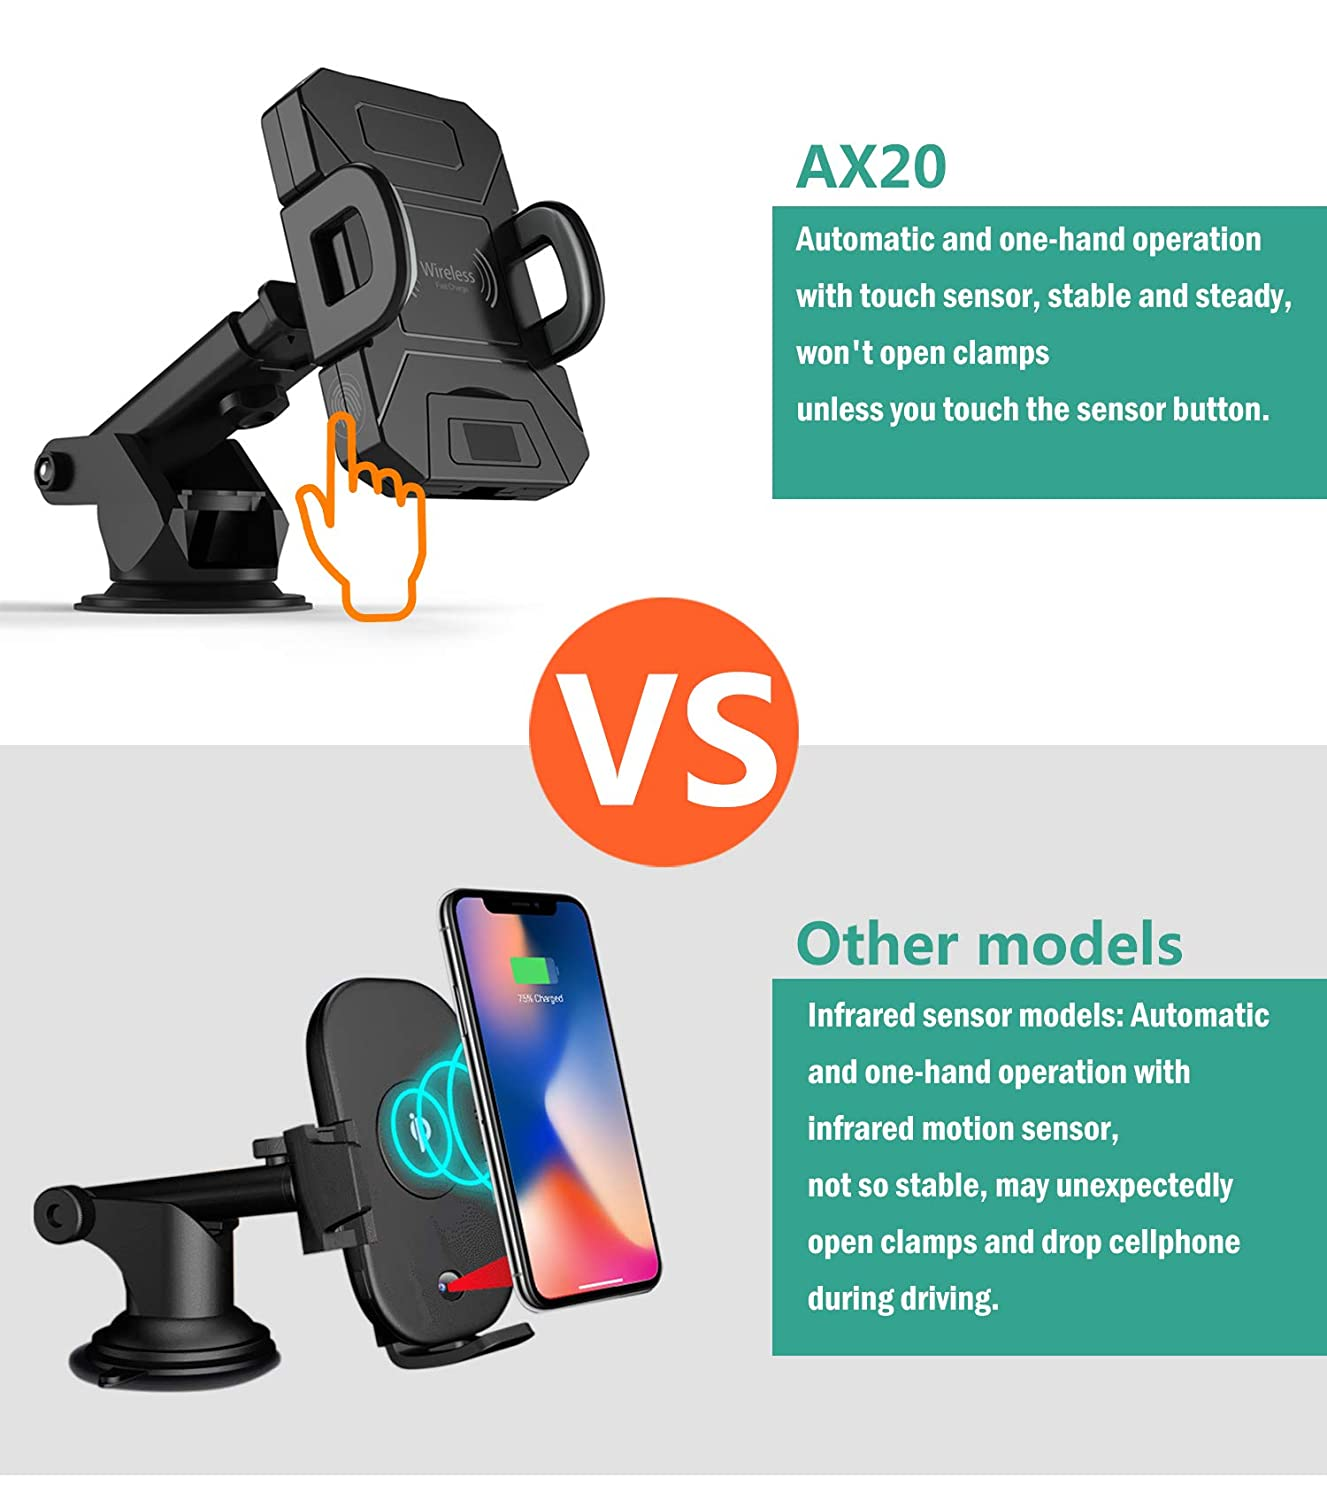 Wireless Car Charger with Automatic Clamps Quick Charge 3.0 USB Car Charger iPhone X S10//S9//S8//S7 Dashboard and Air Vent Cell Phone Mount for Samsung Galaxy Note 9//8 8//8 Plus, AX20